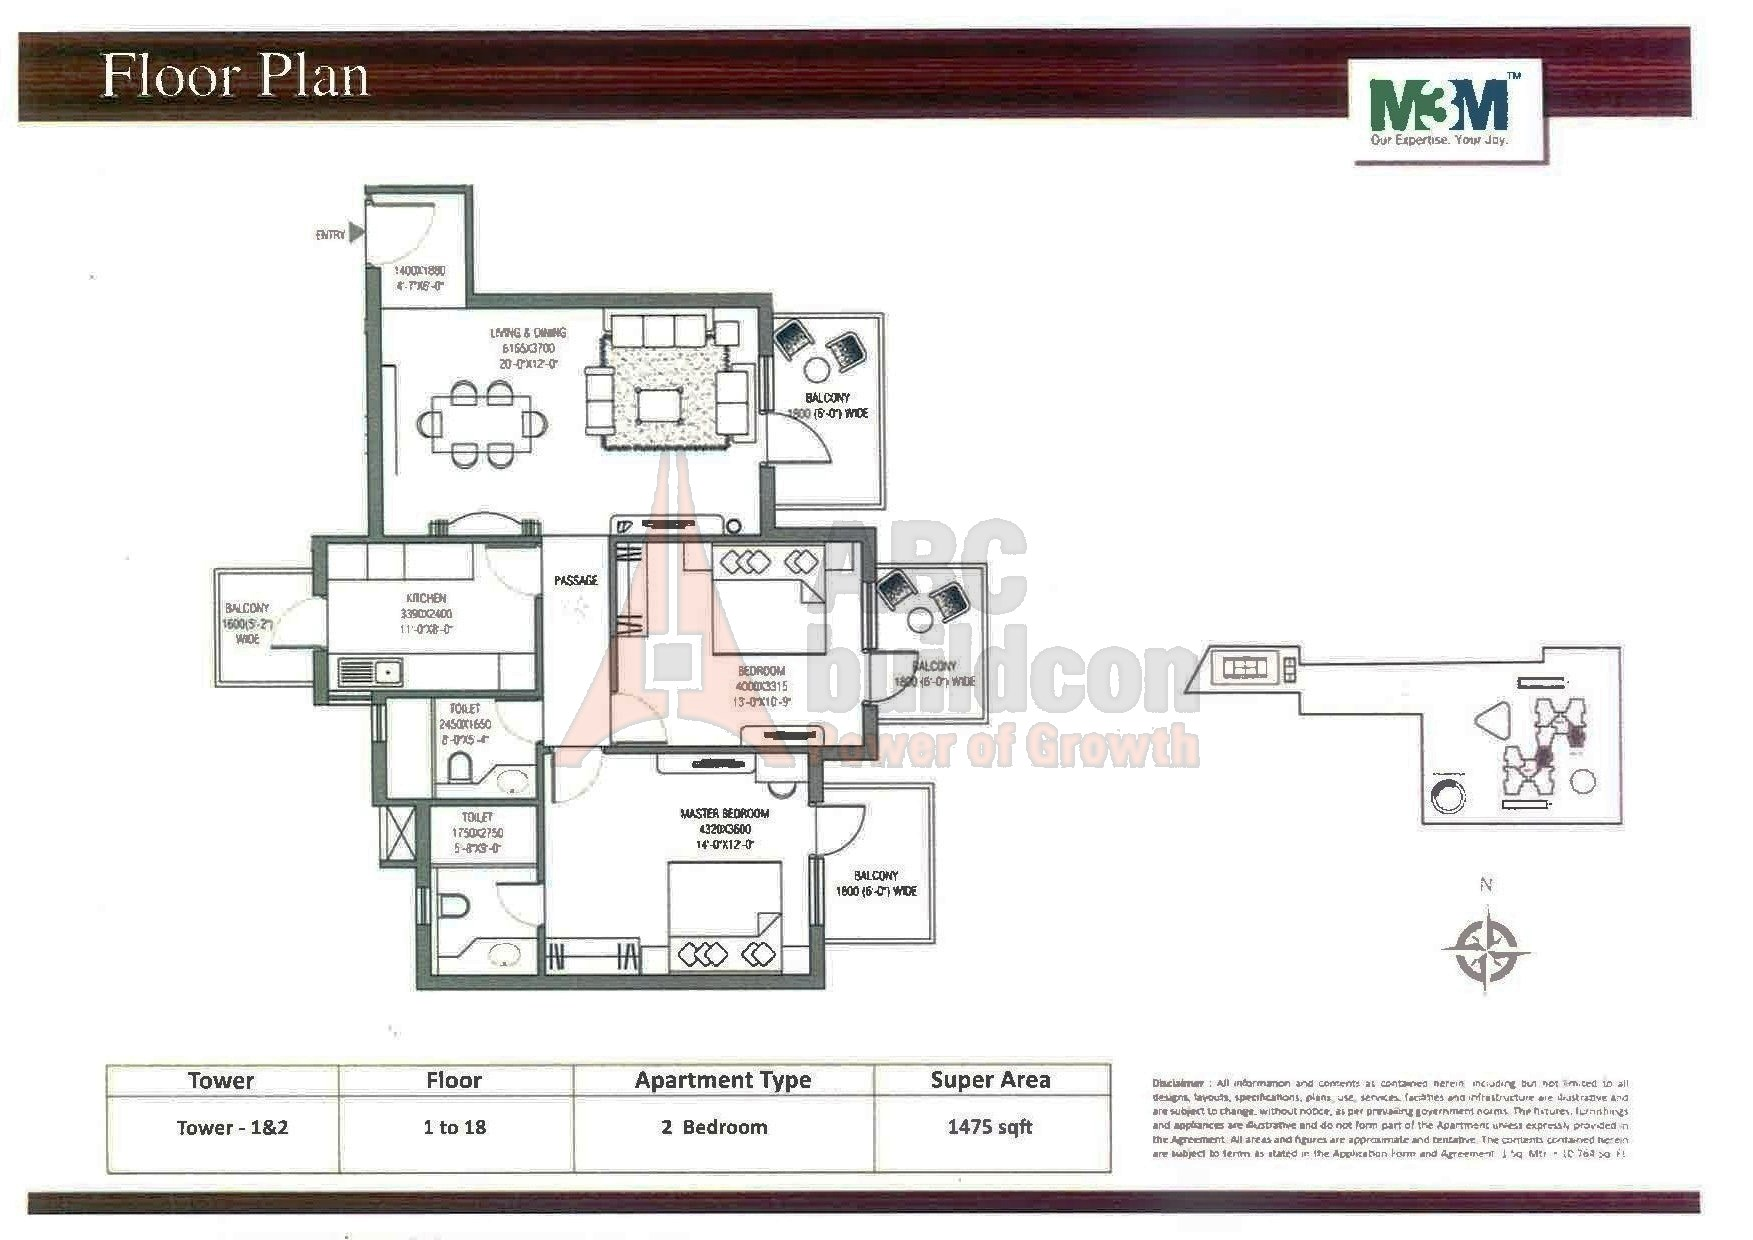 M3m Escala Floor Plan Floorplan